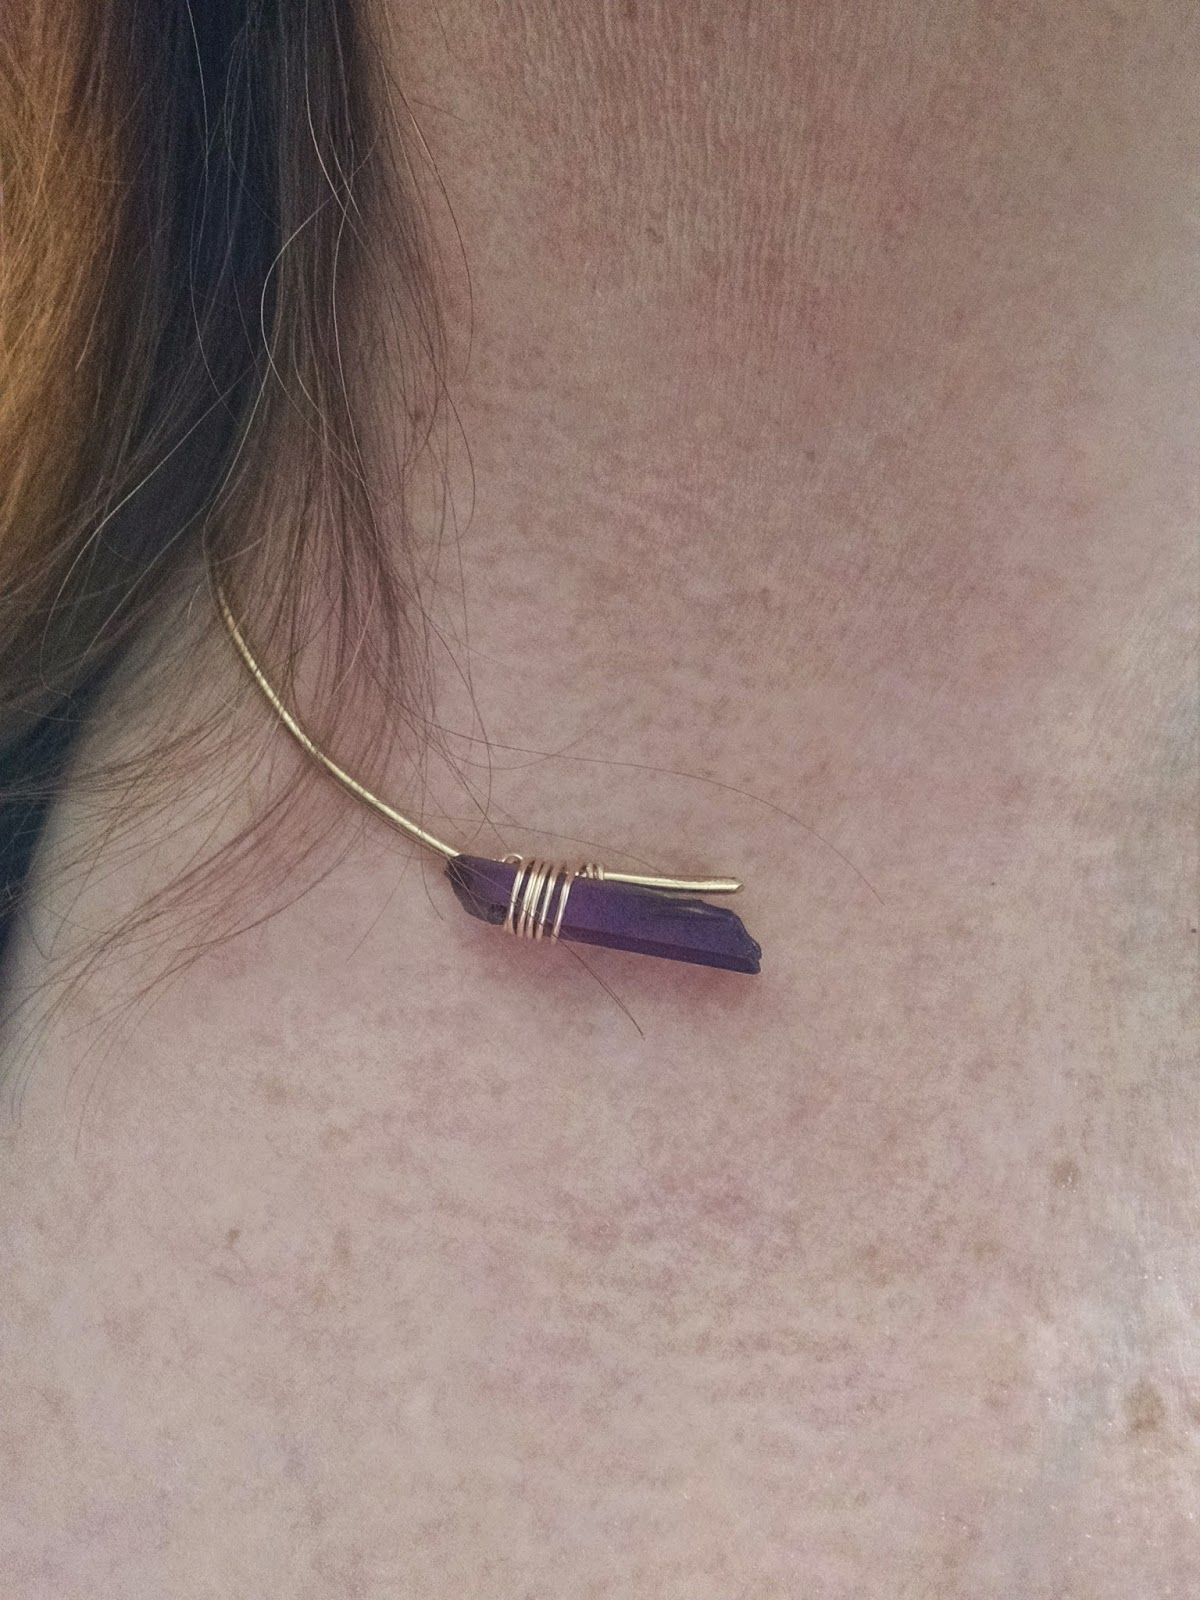 Bfree Jewelry Review